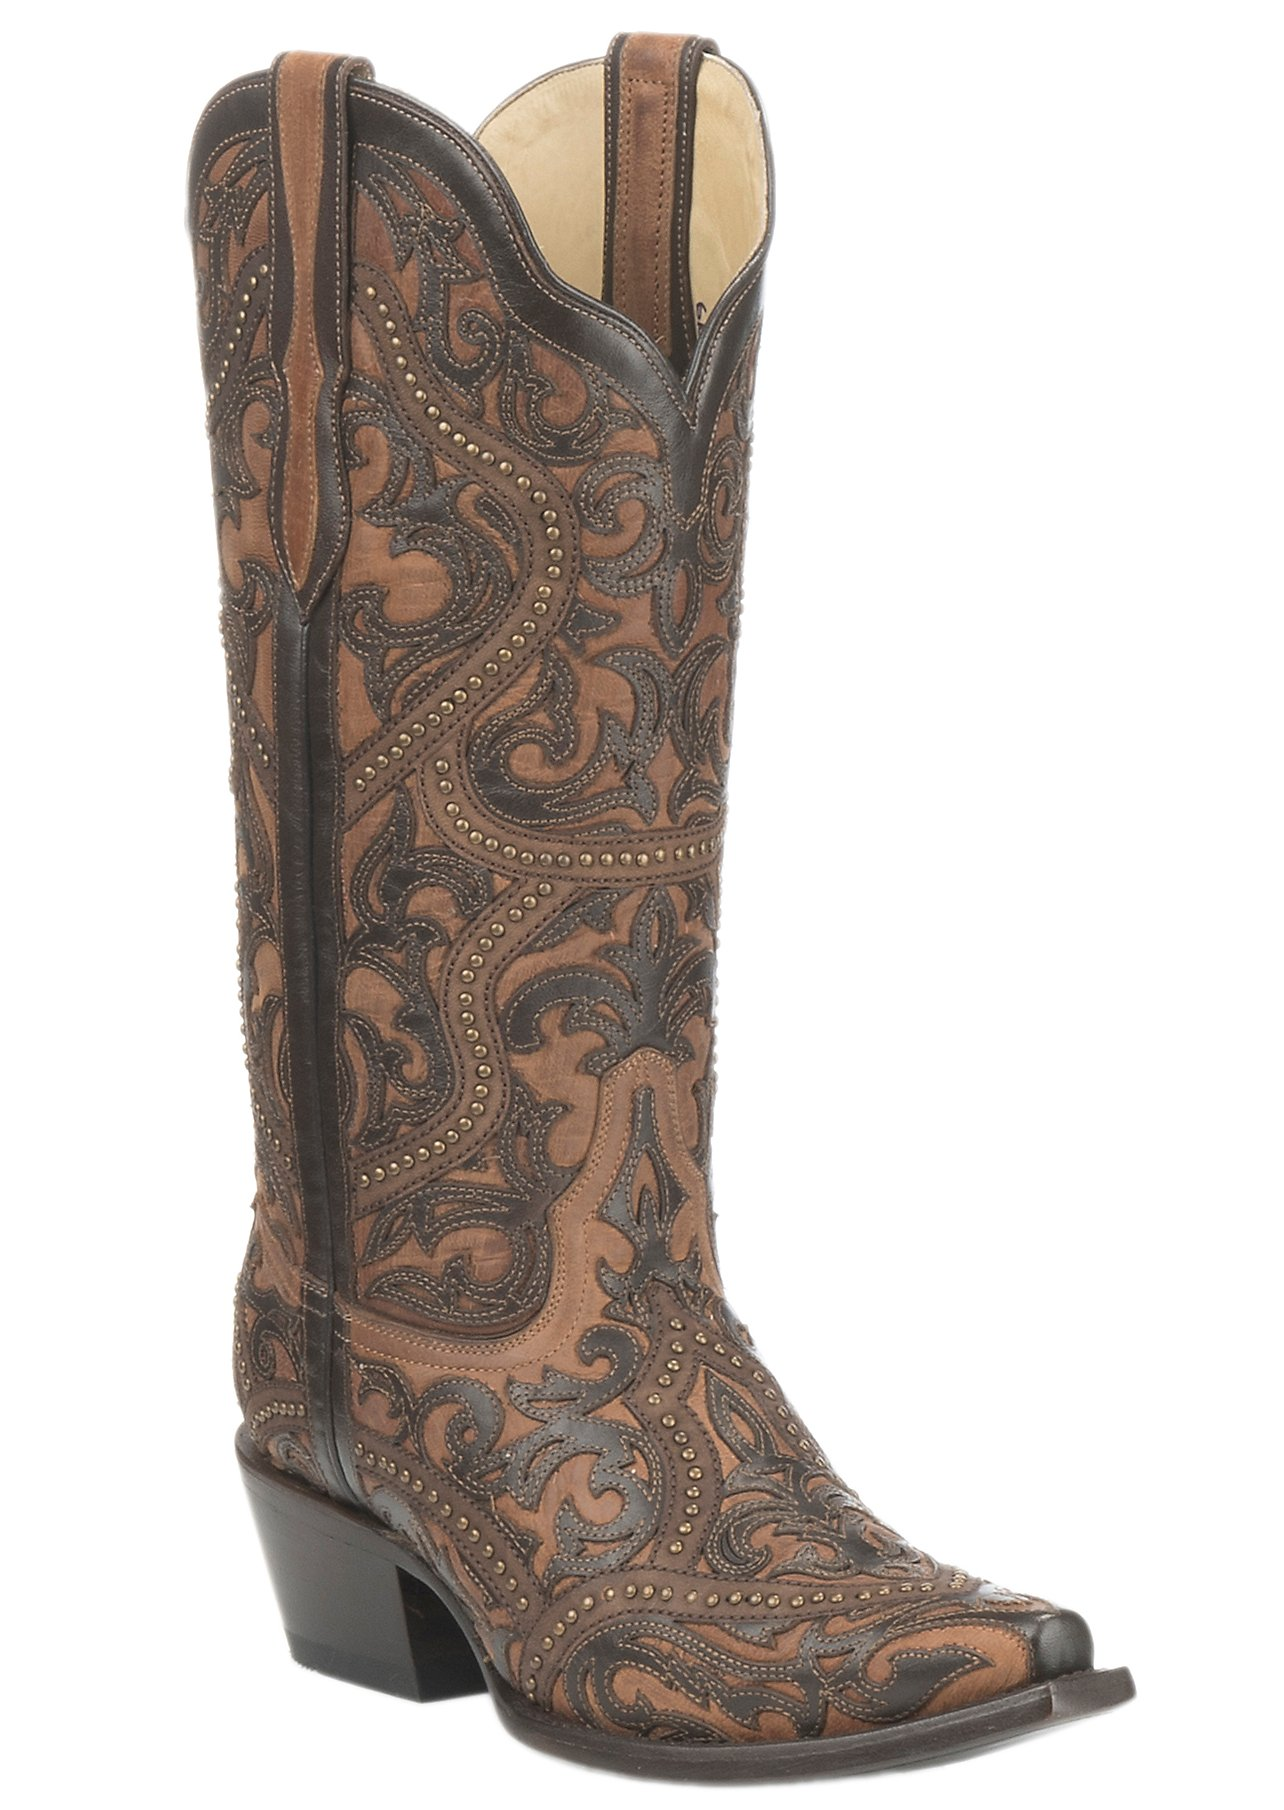 Women&39s Western Boots | Ladie&39s Western Boots | Cavender&39s